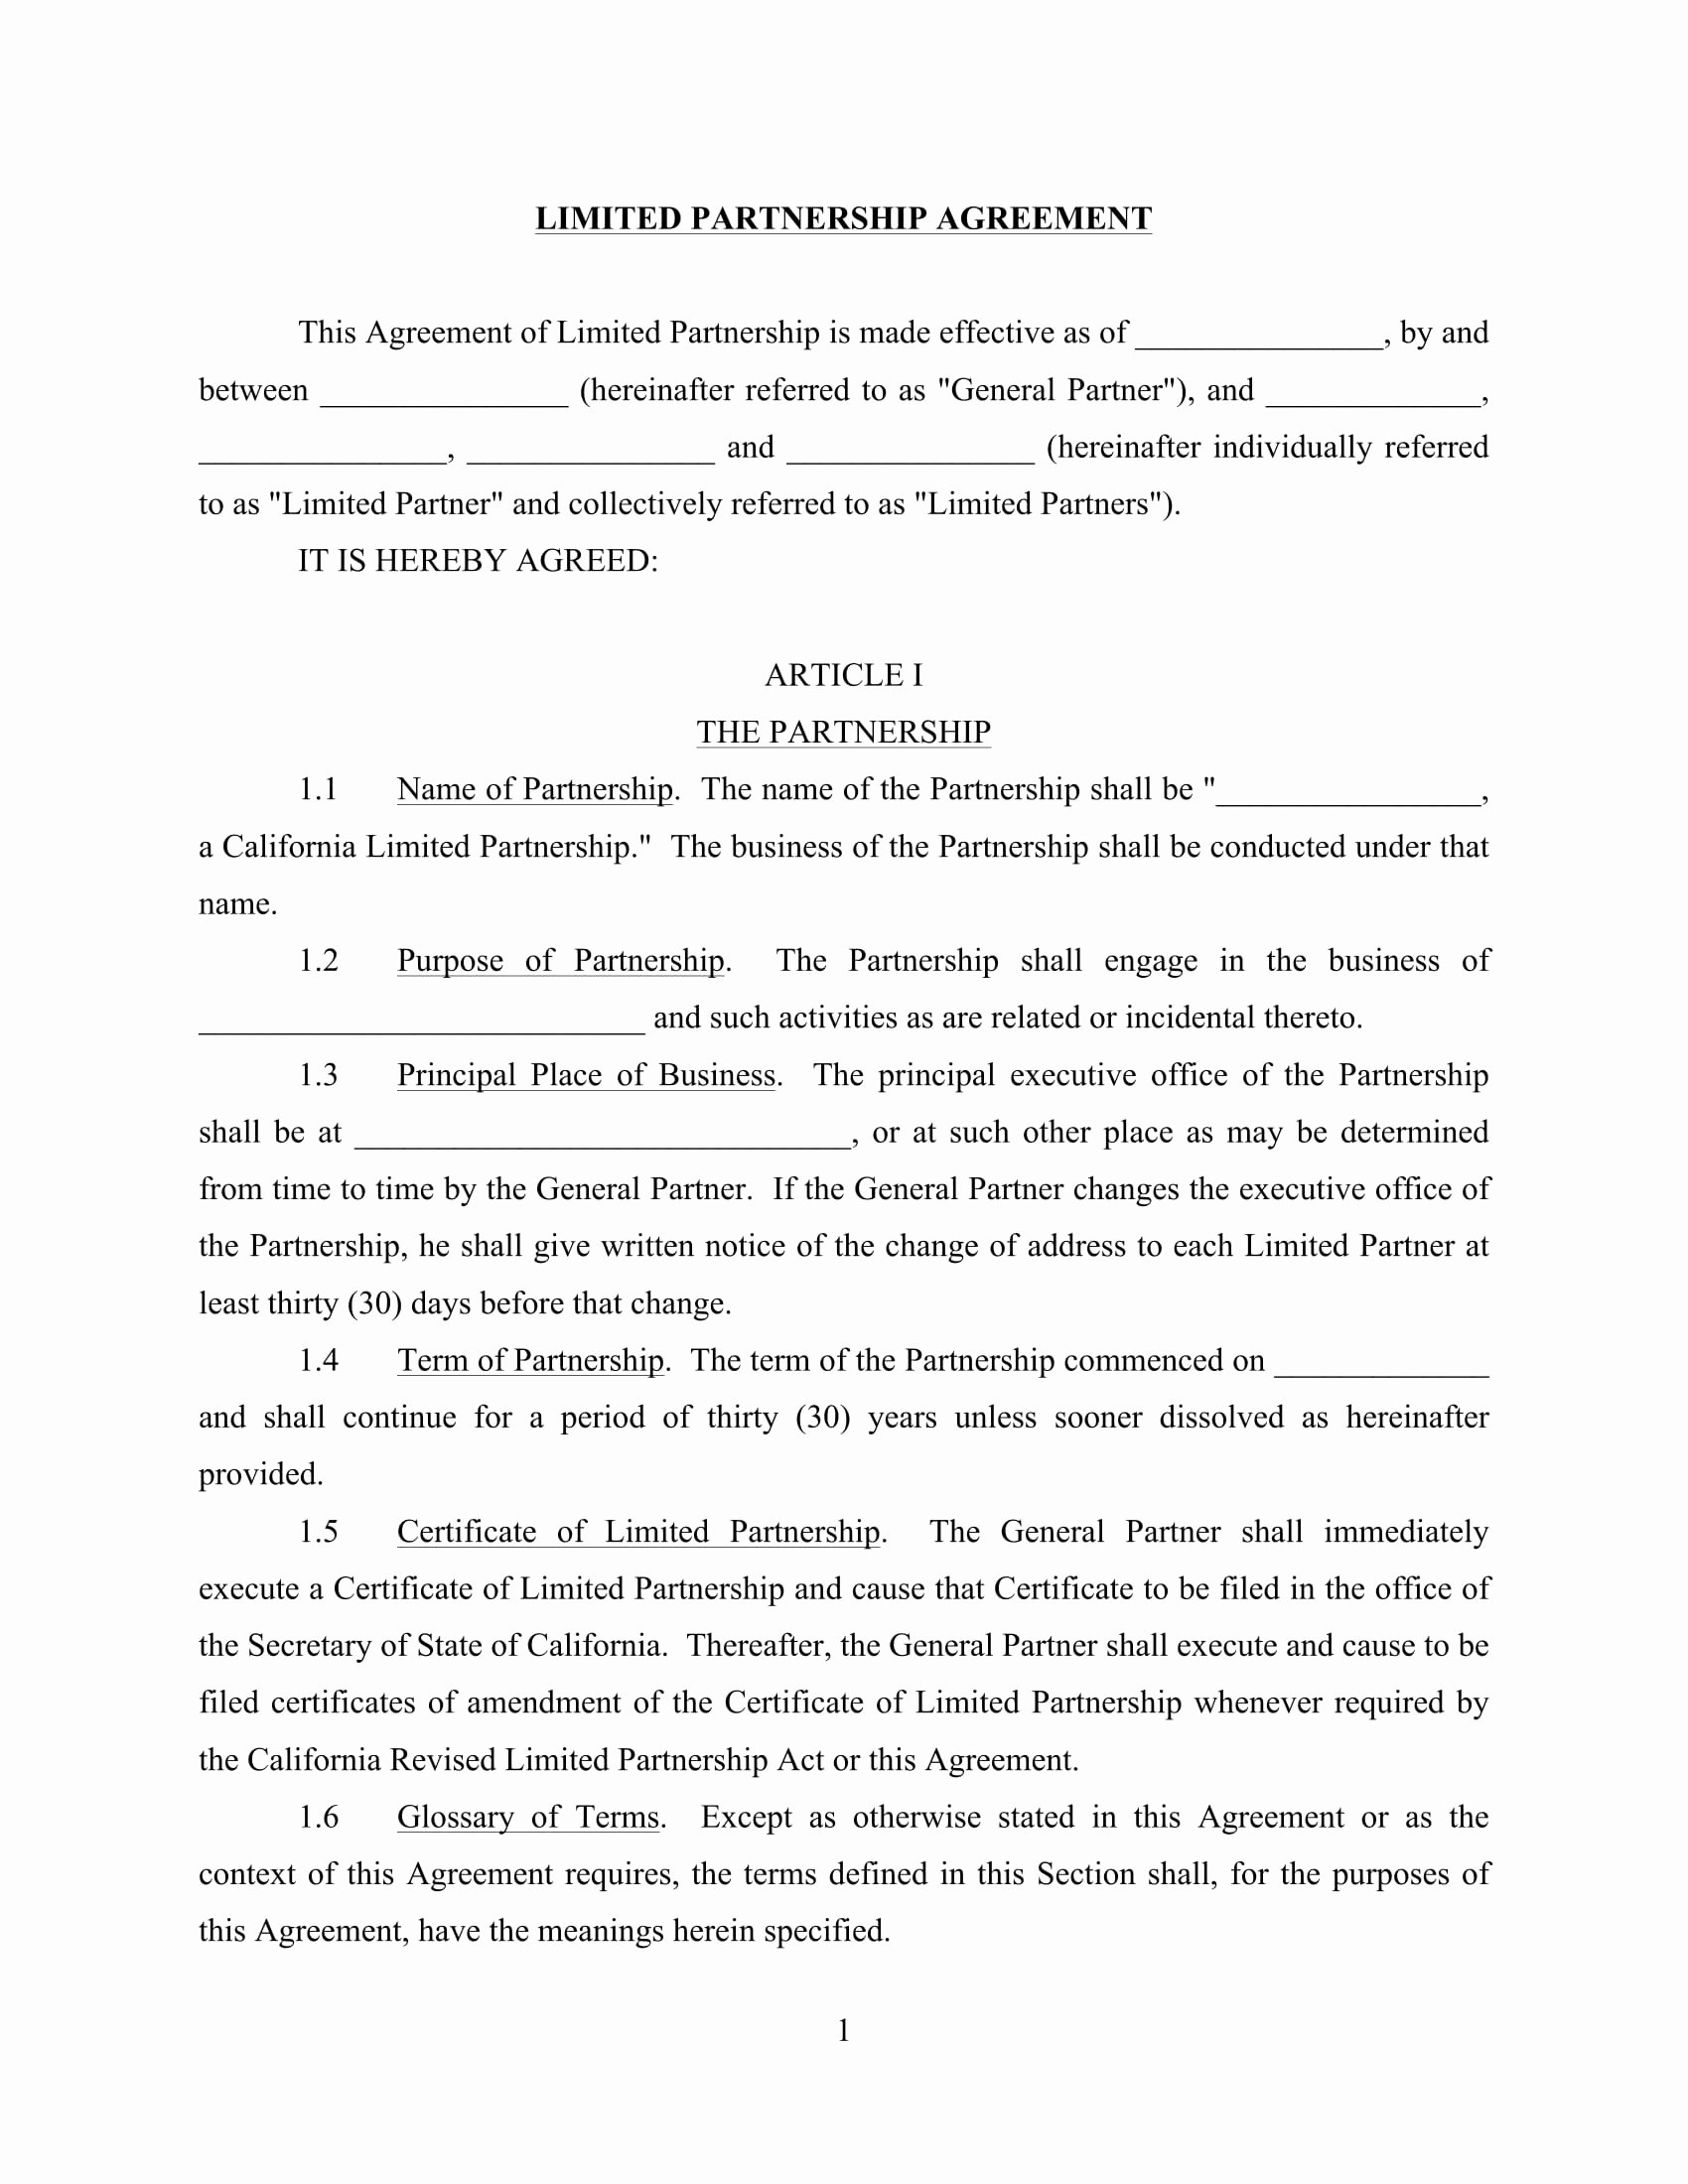 Partnership Agreement Template Word Best Of 4 Limited Partnership Agreement forms Word Pdf